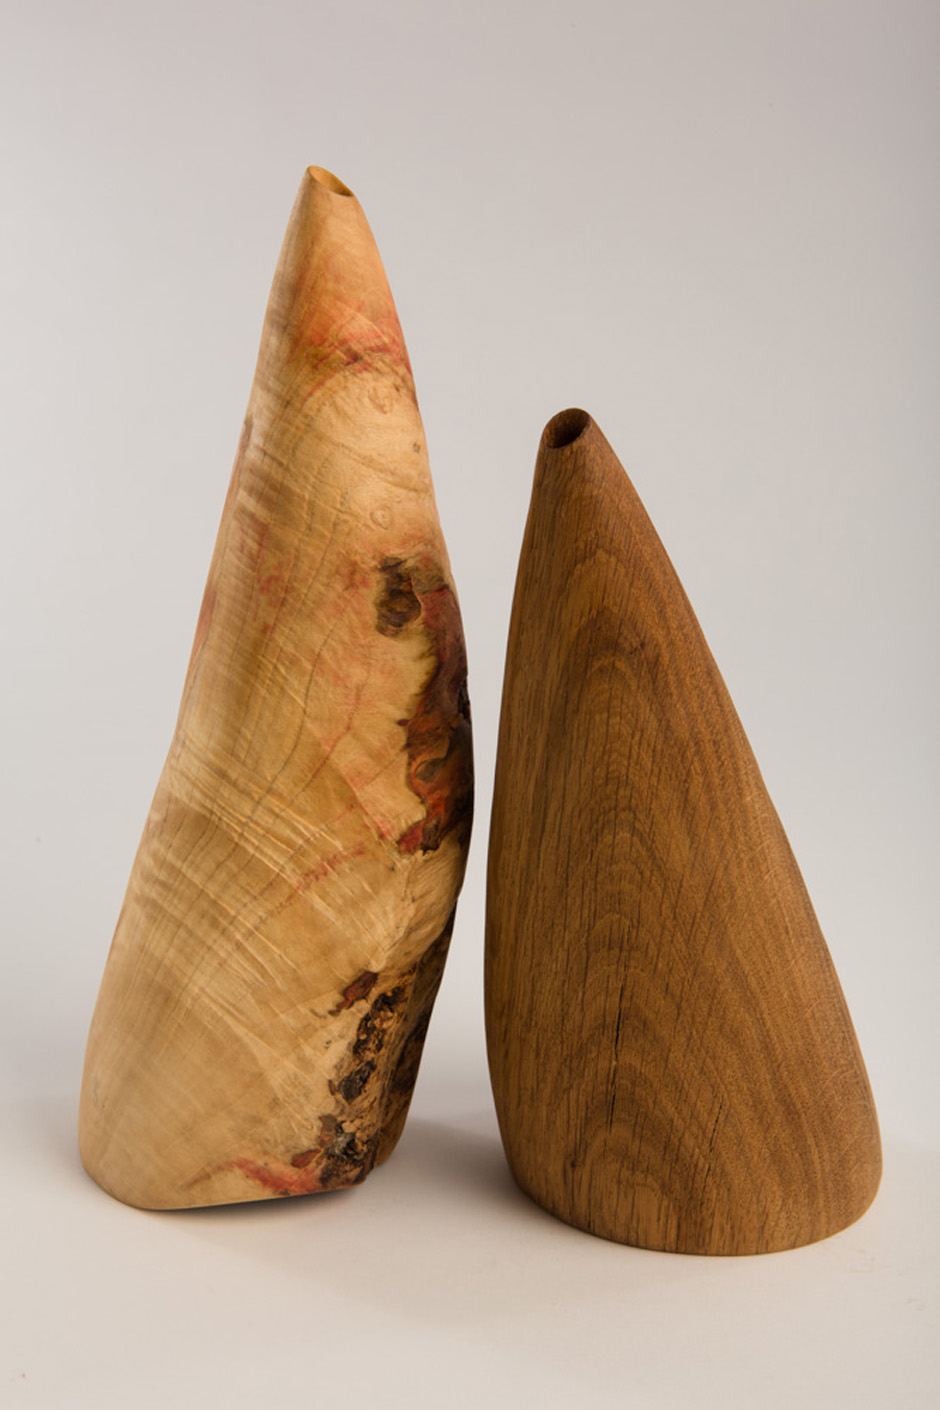 "L-R Belder, Box Elder, beeswax. linseed oil, 4"" diameter x 11"" high and Oak, Oak, beeswax. linseed oil, 4.5"" diameter x 8"" high (with linen sac) Photography: Stacey Evans"